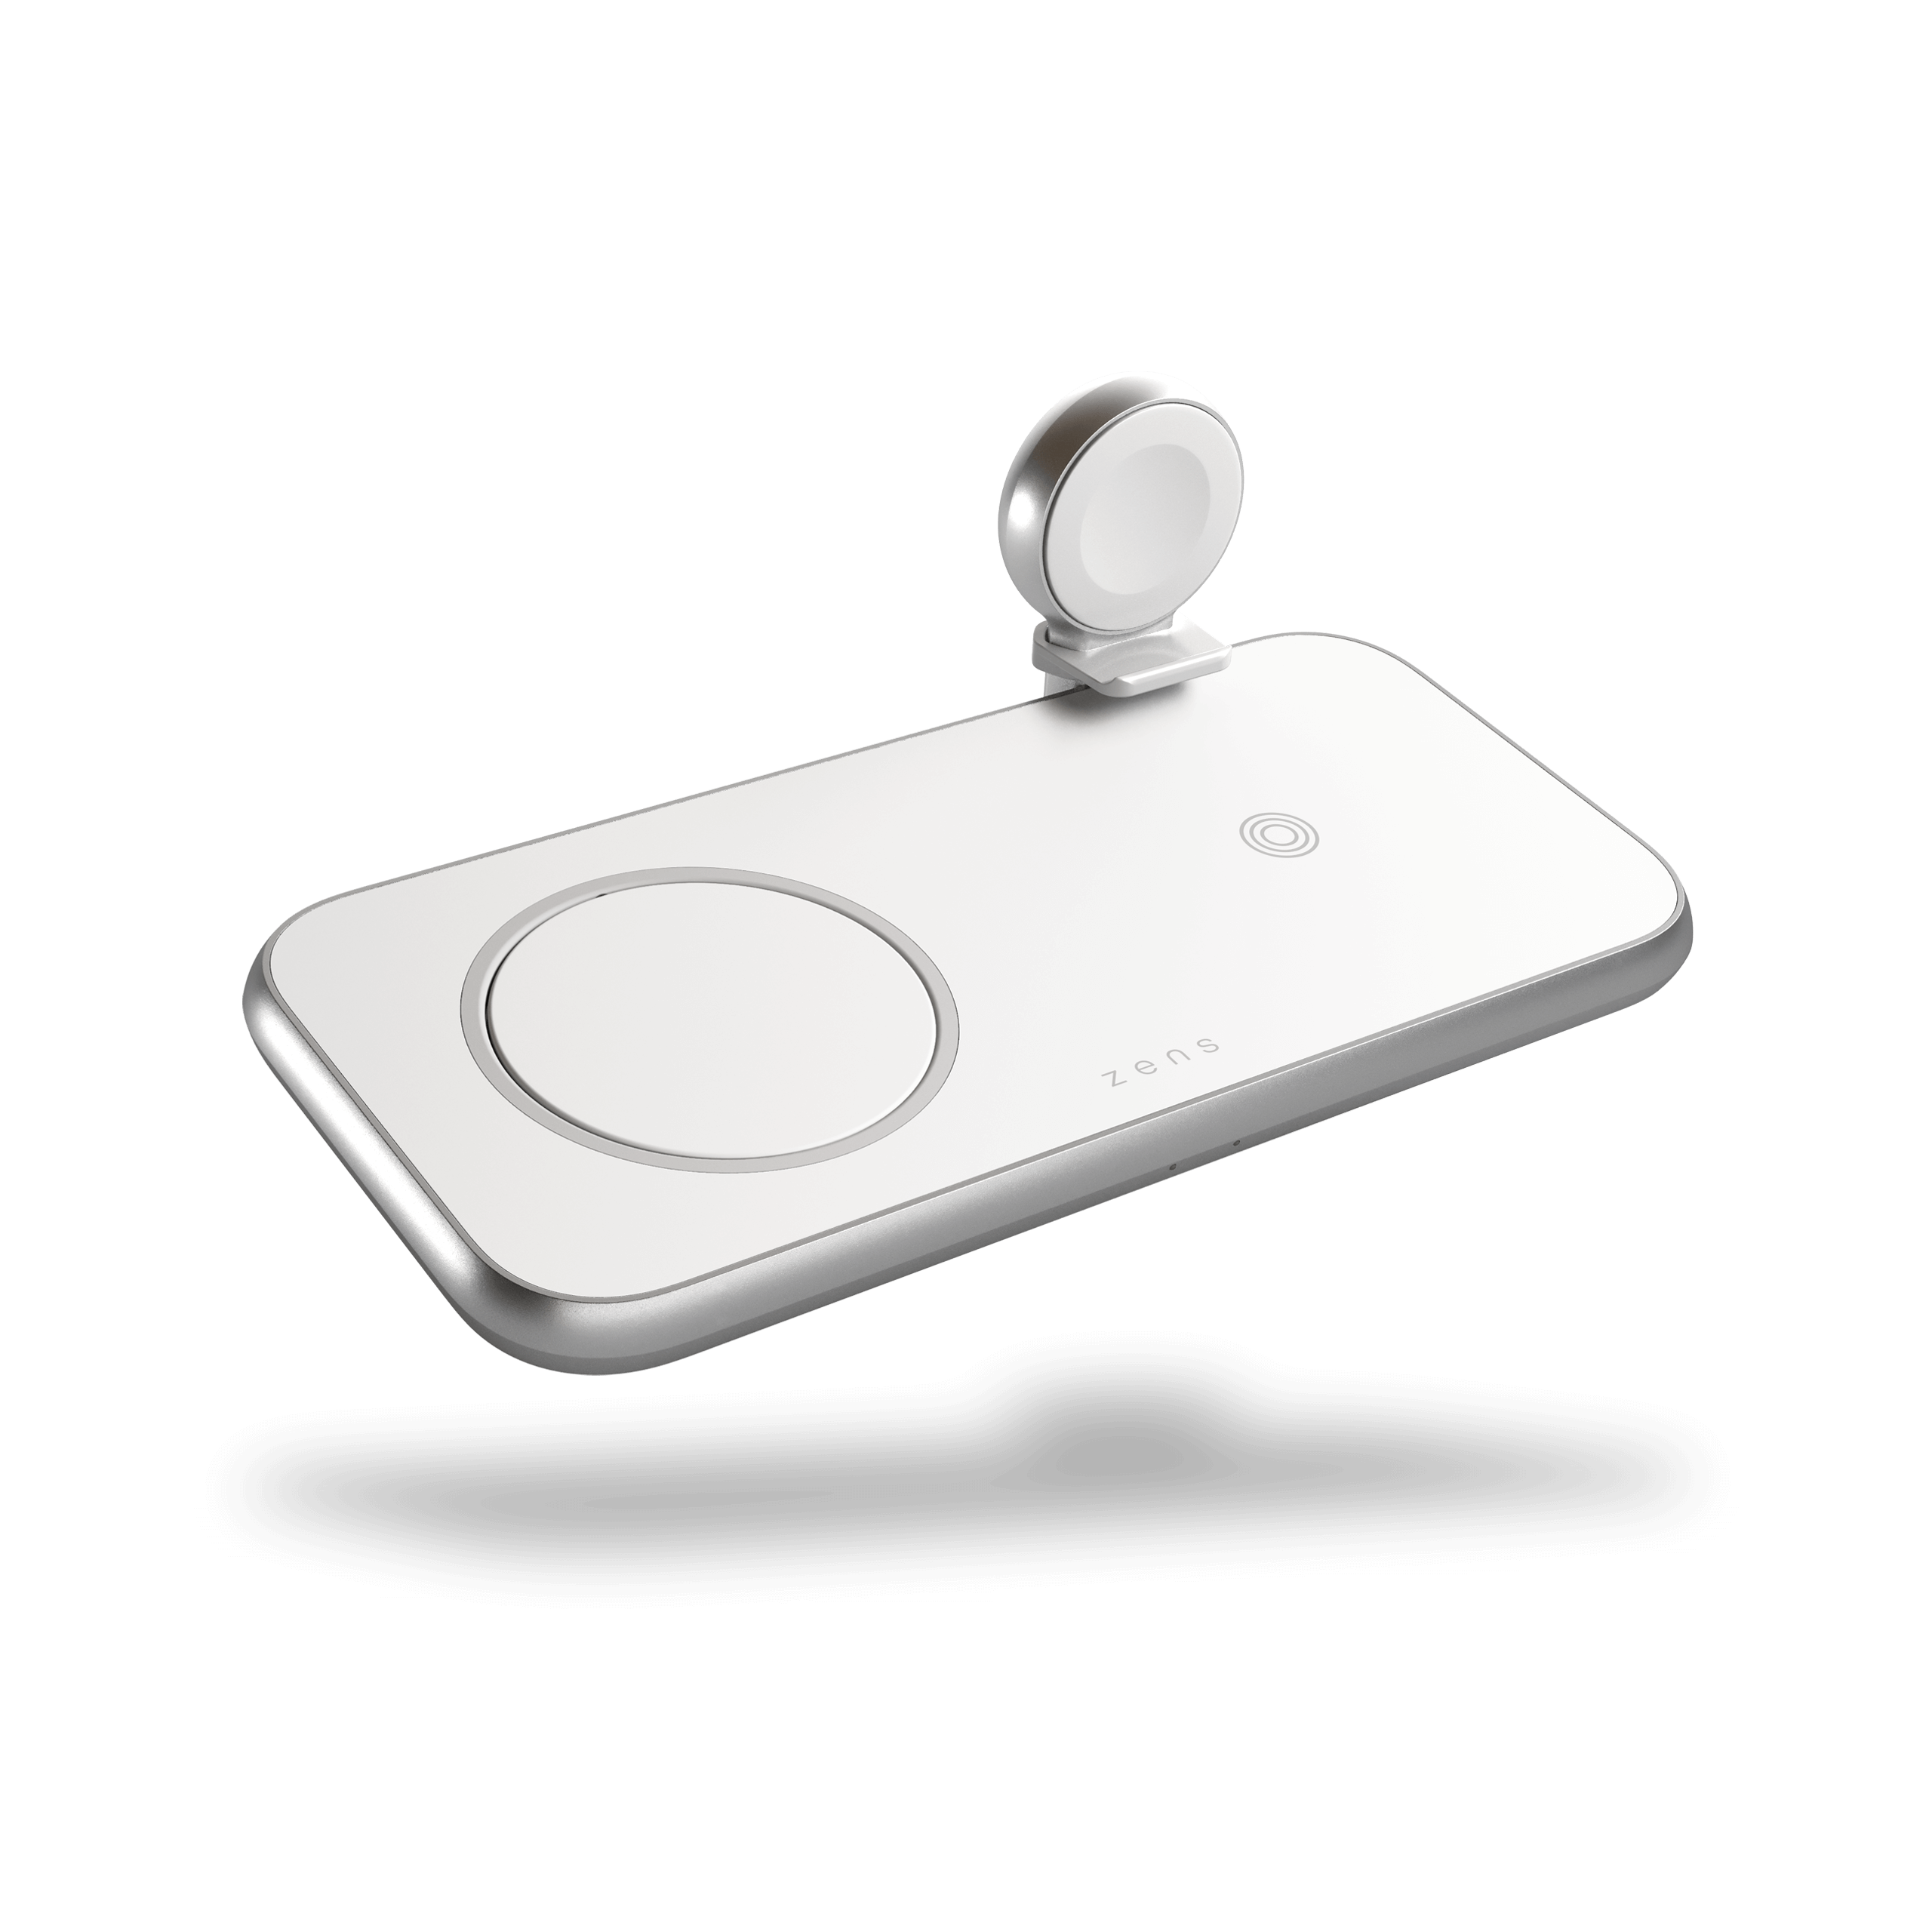 ZEDC17W - Zens 4-in-1 MagSafe Wireless Charger with Magsafe